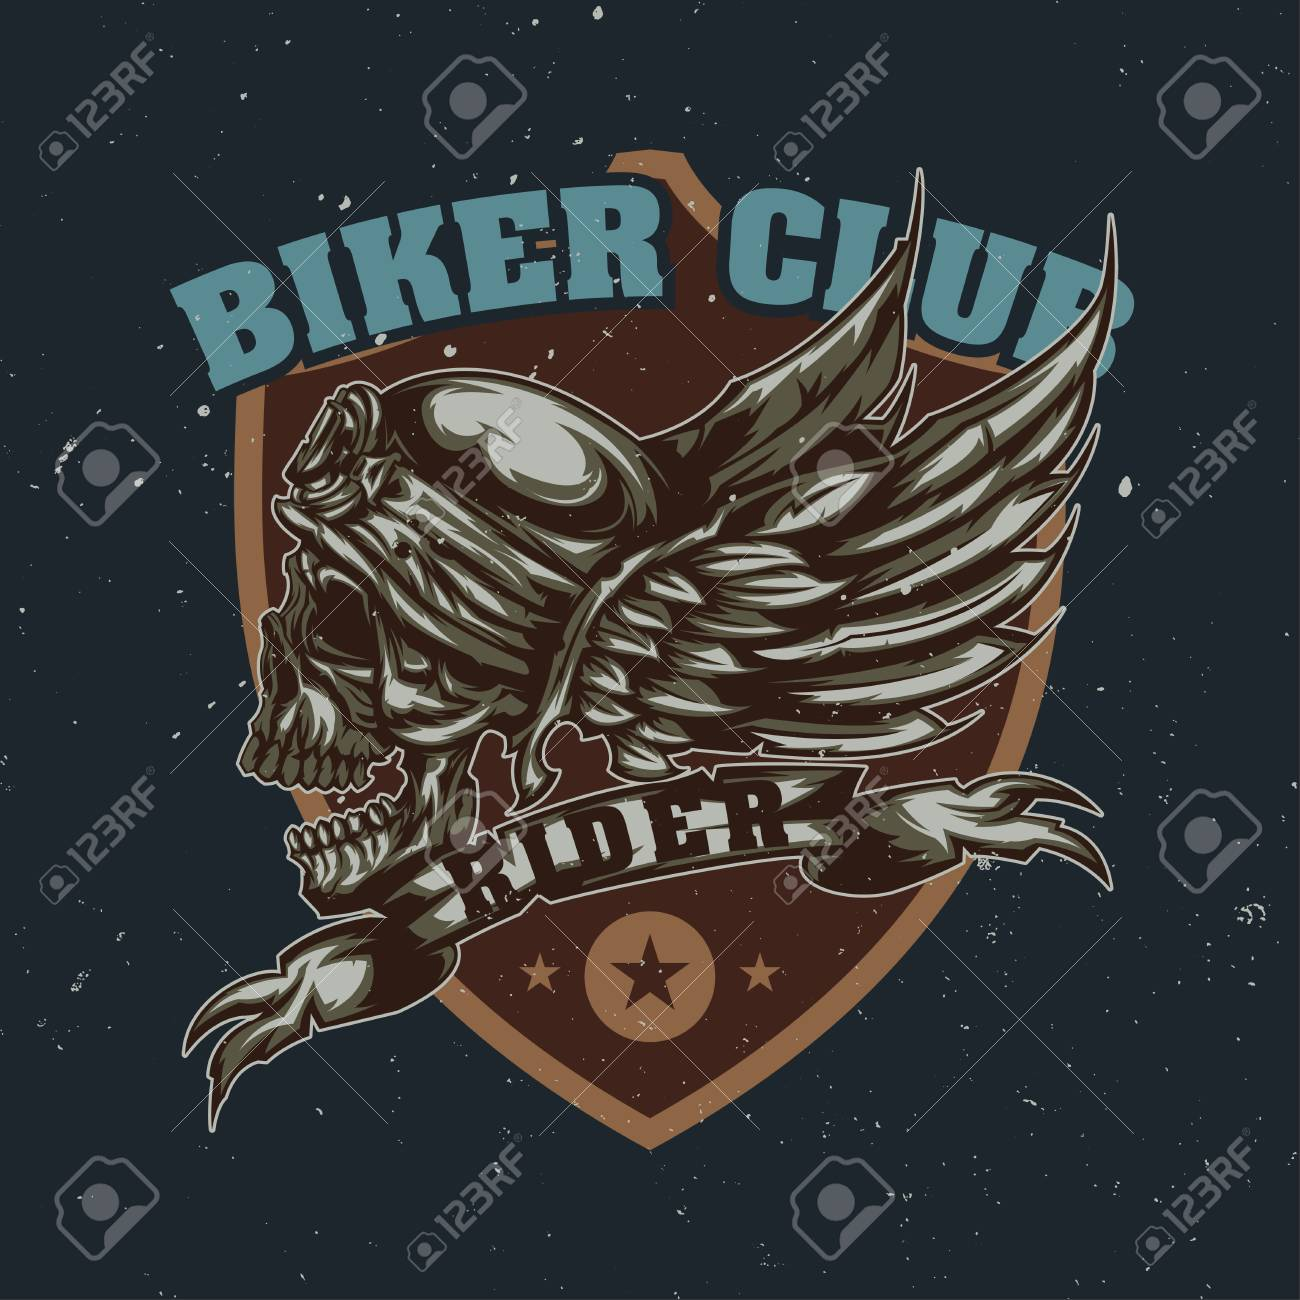 T-shirt or poster design with illustration of skull at helmet and wings on the background - 83369377